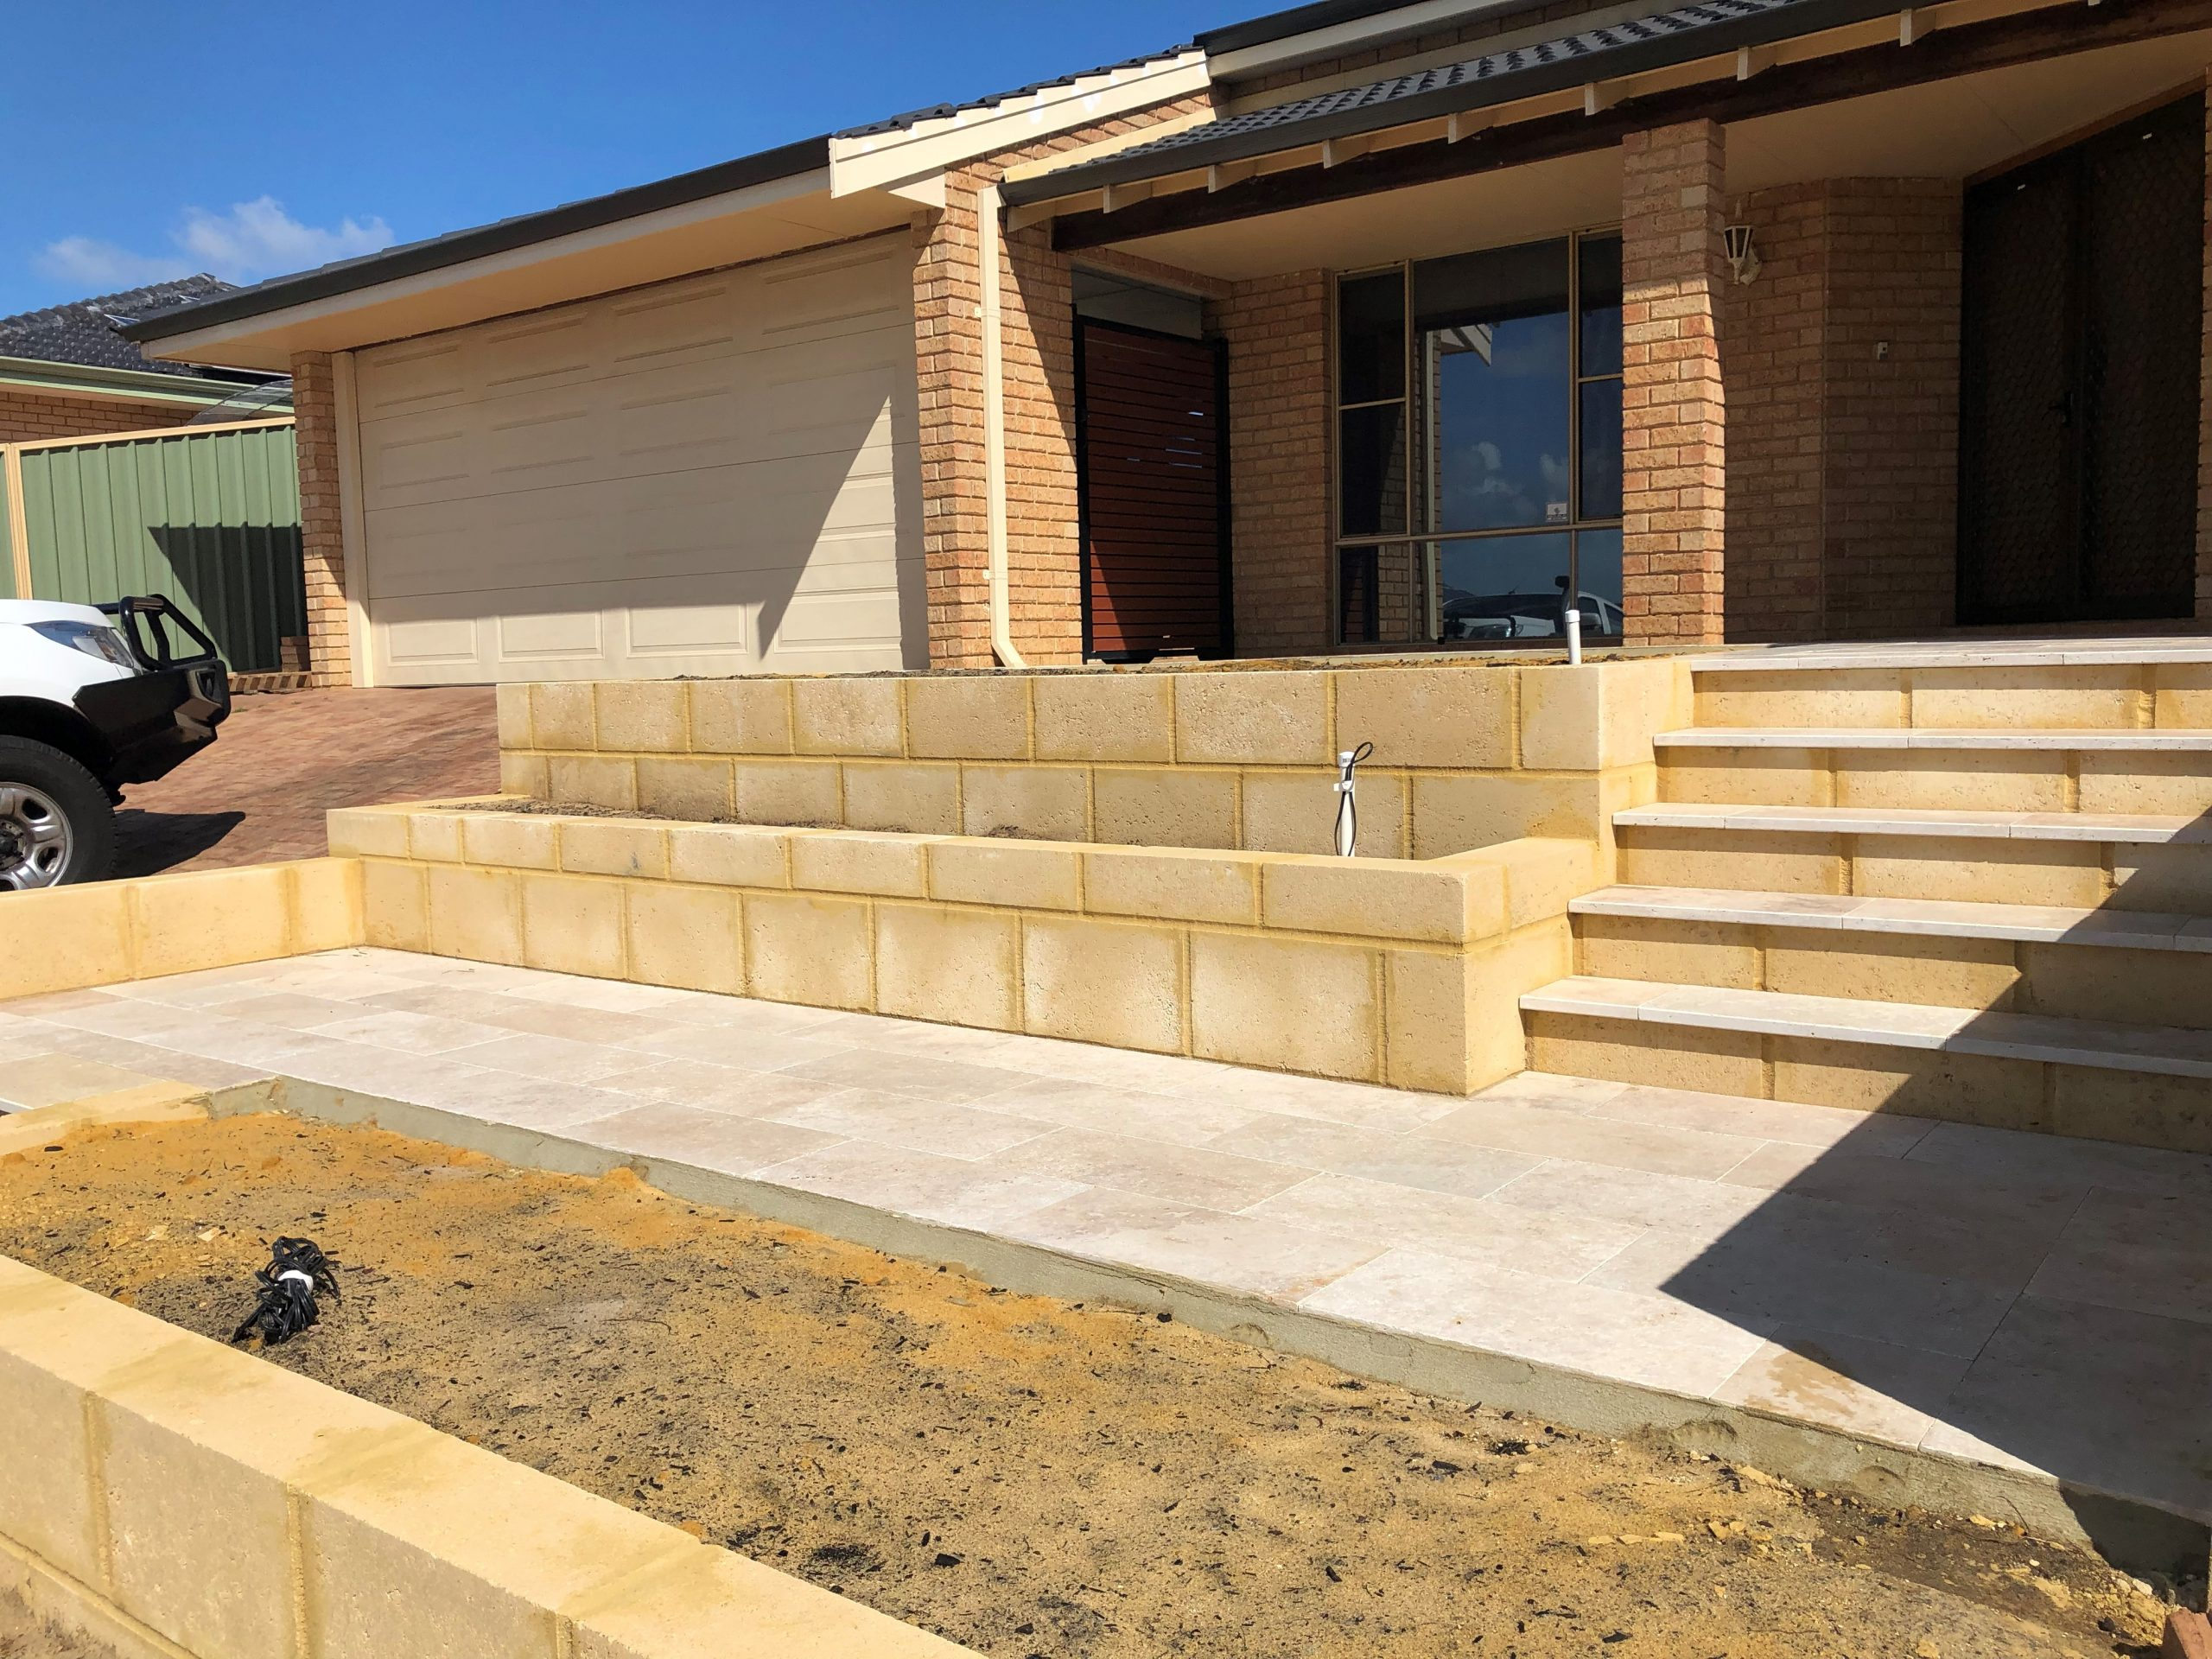 Bricklaying Ideas in Canberra